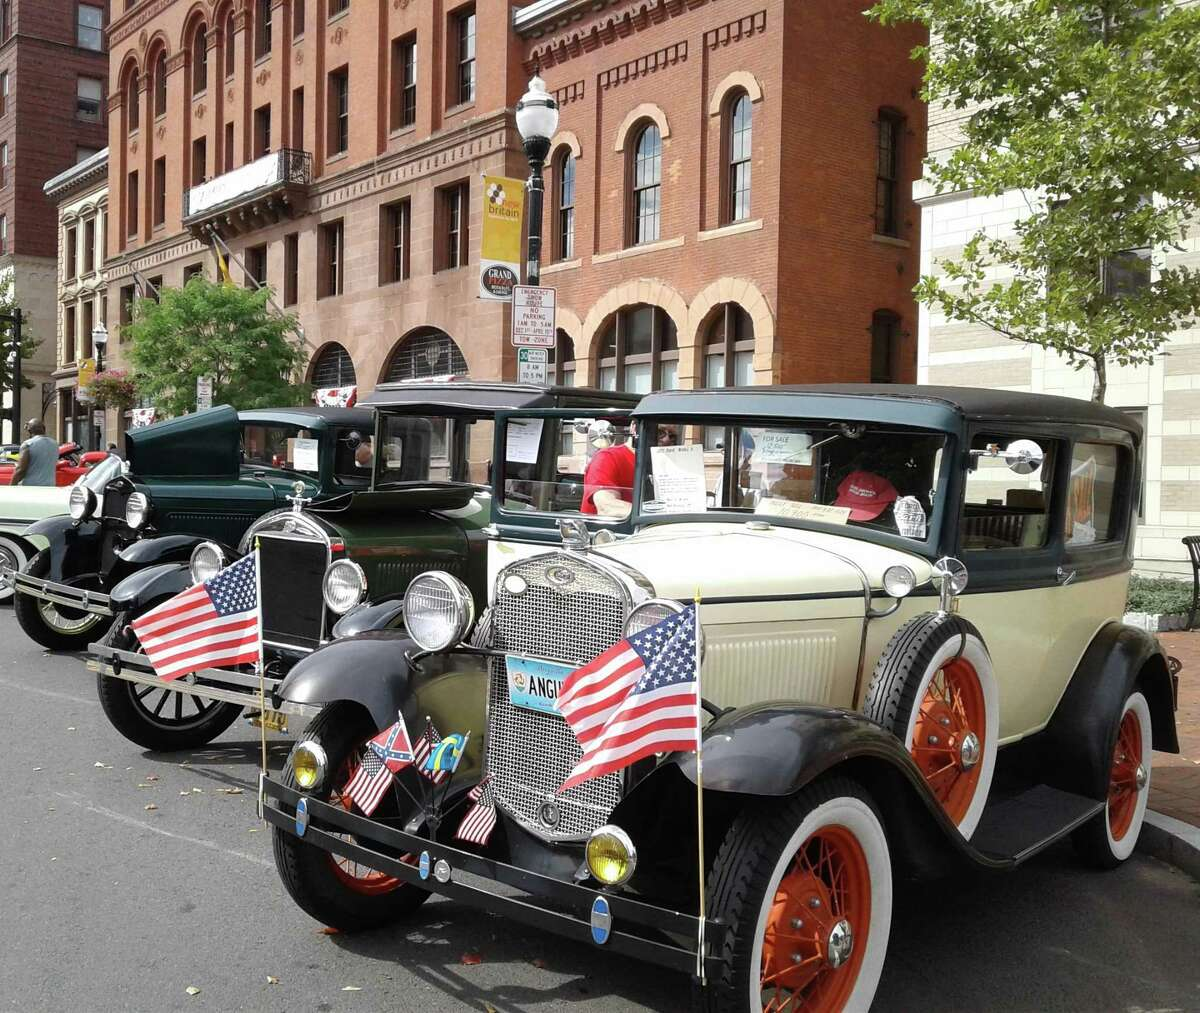 Cars are parked in front of town hall during the 2019 car show.